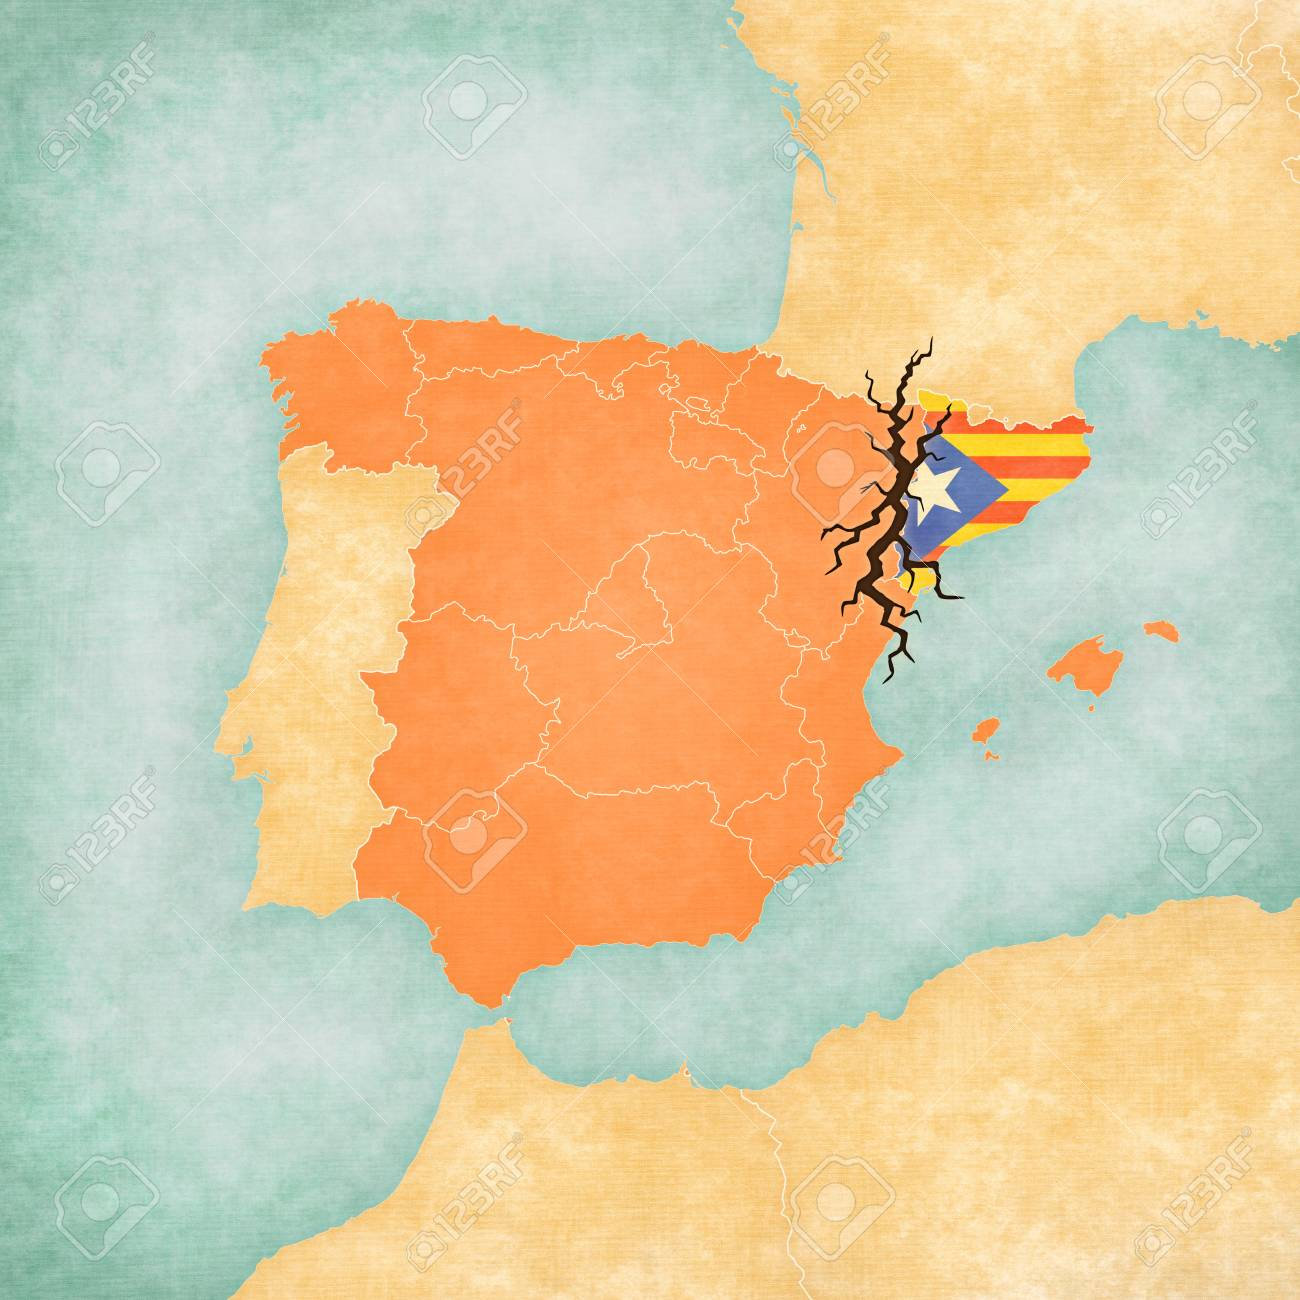 Map Of Spain And Catalonia.Stock Illustration